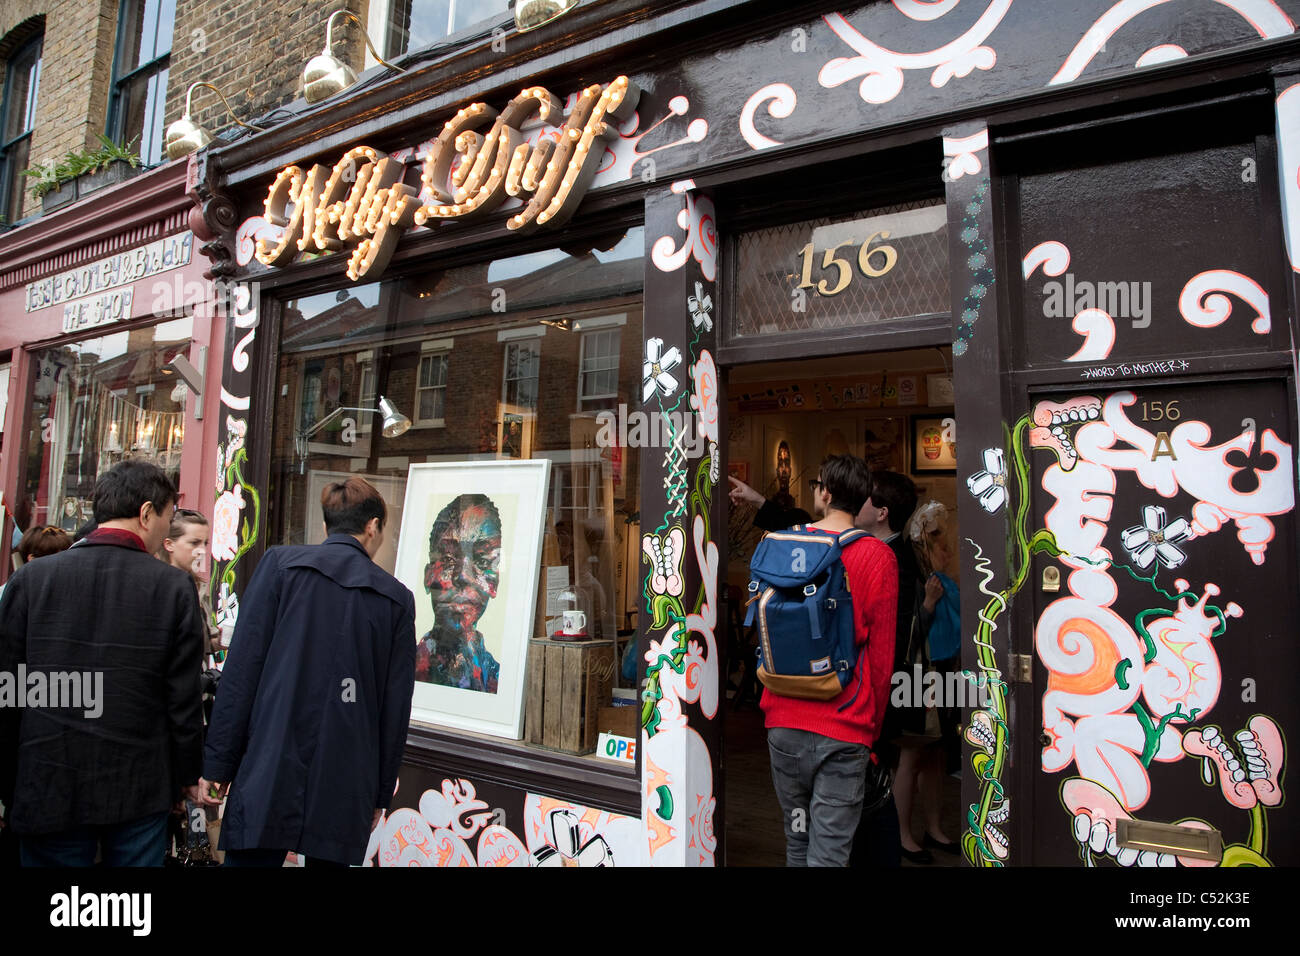 Nelly Duff on Columbia Road, Shoreditch, London - Stock Image